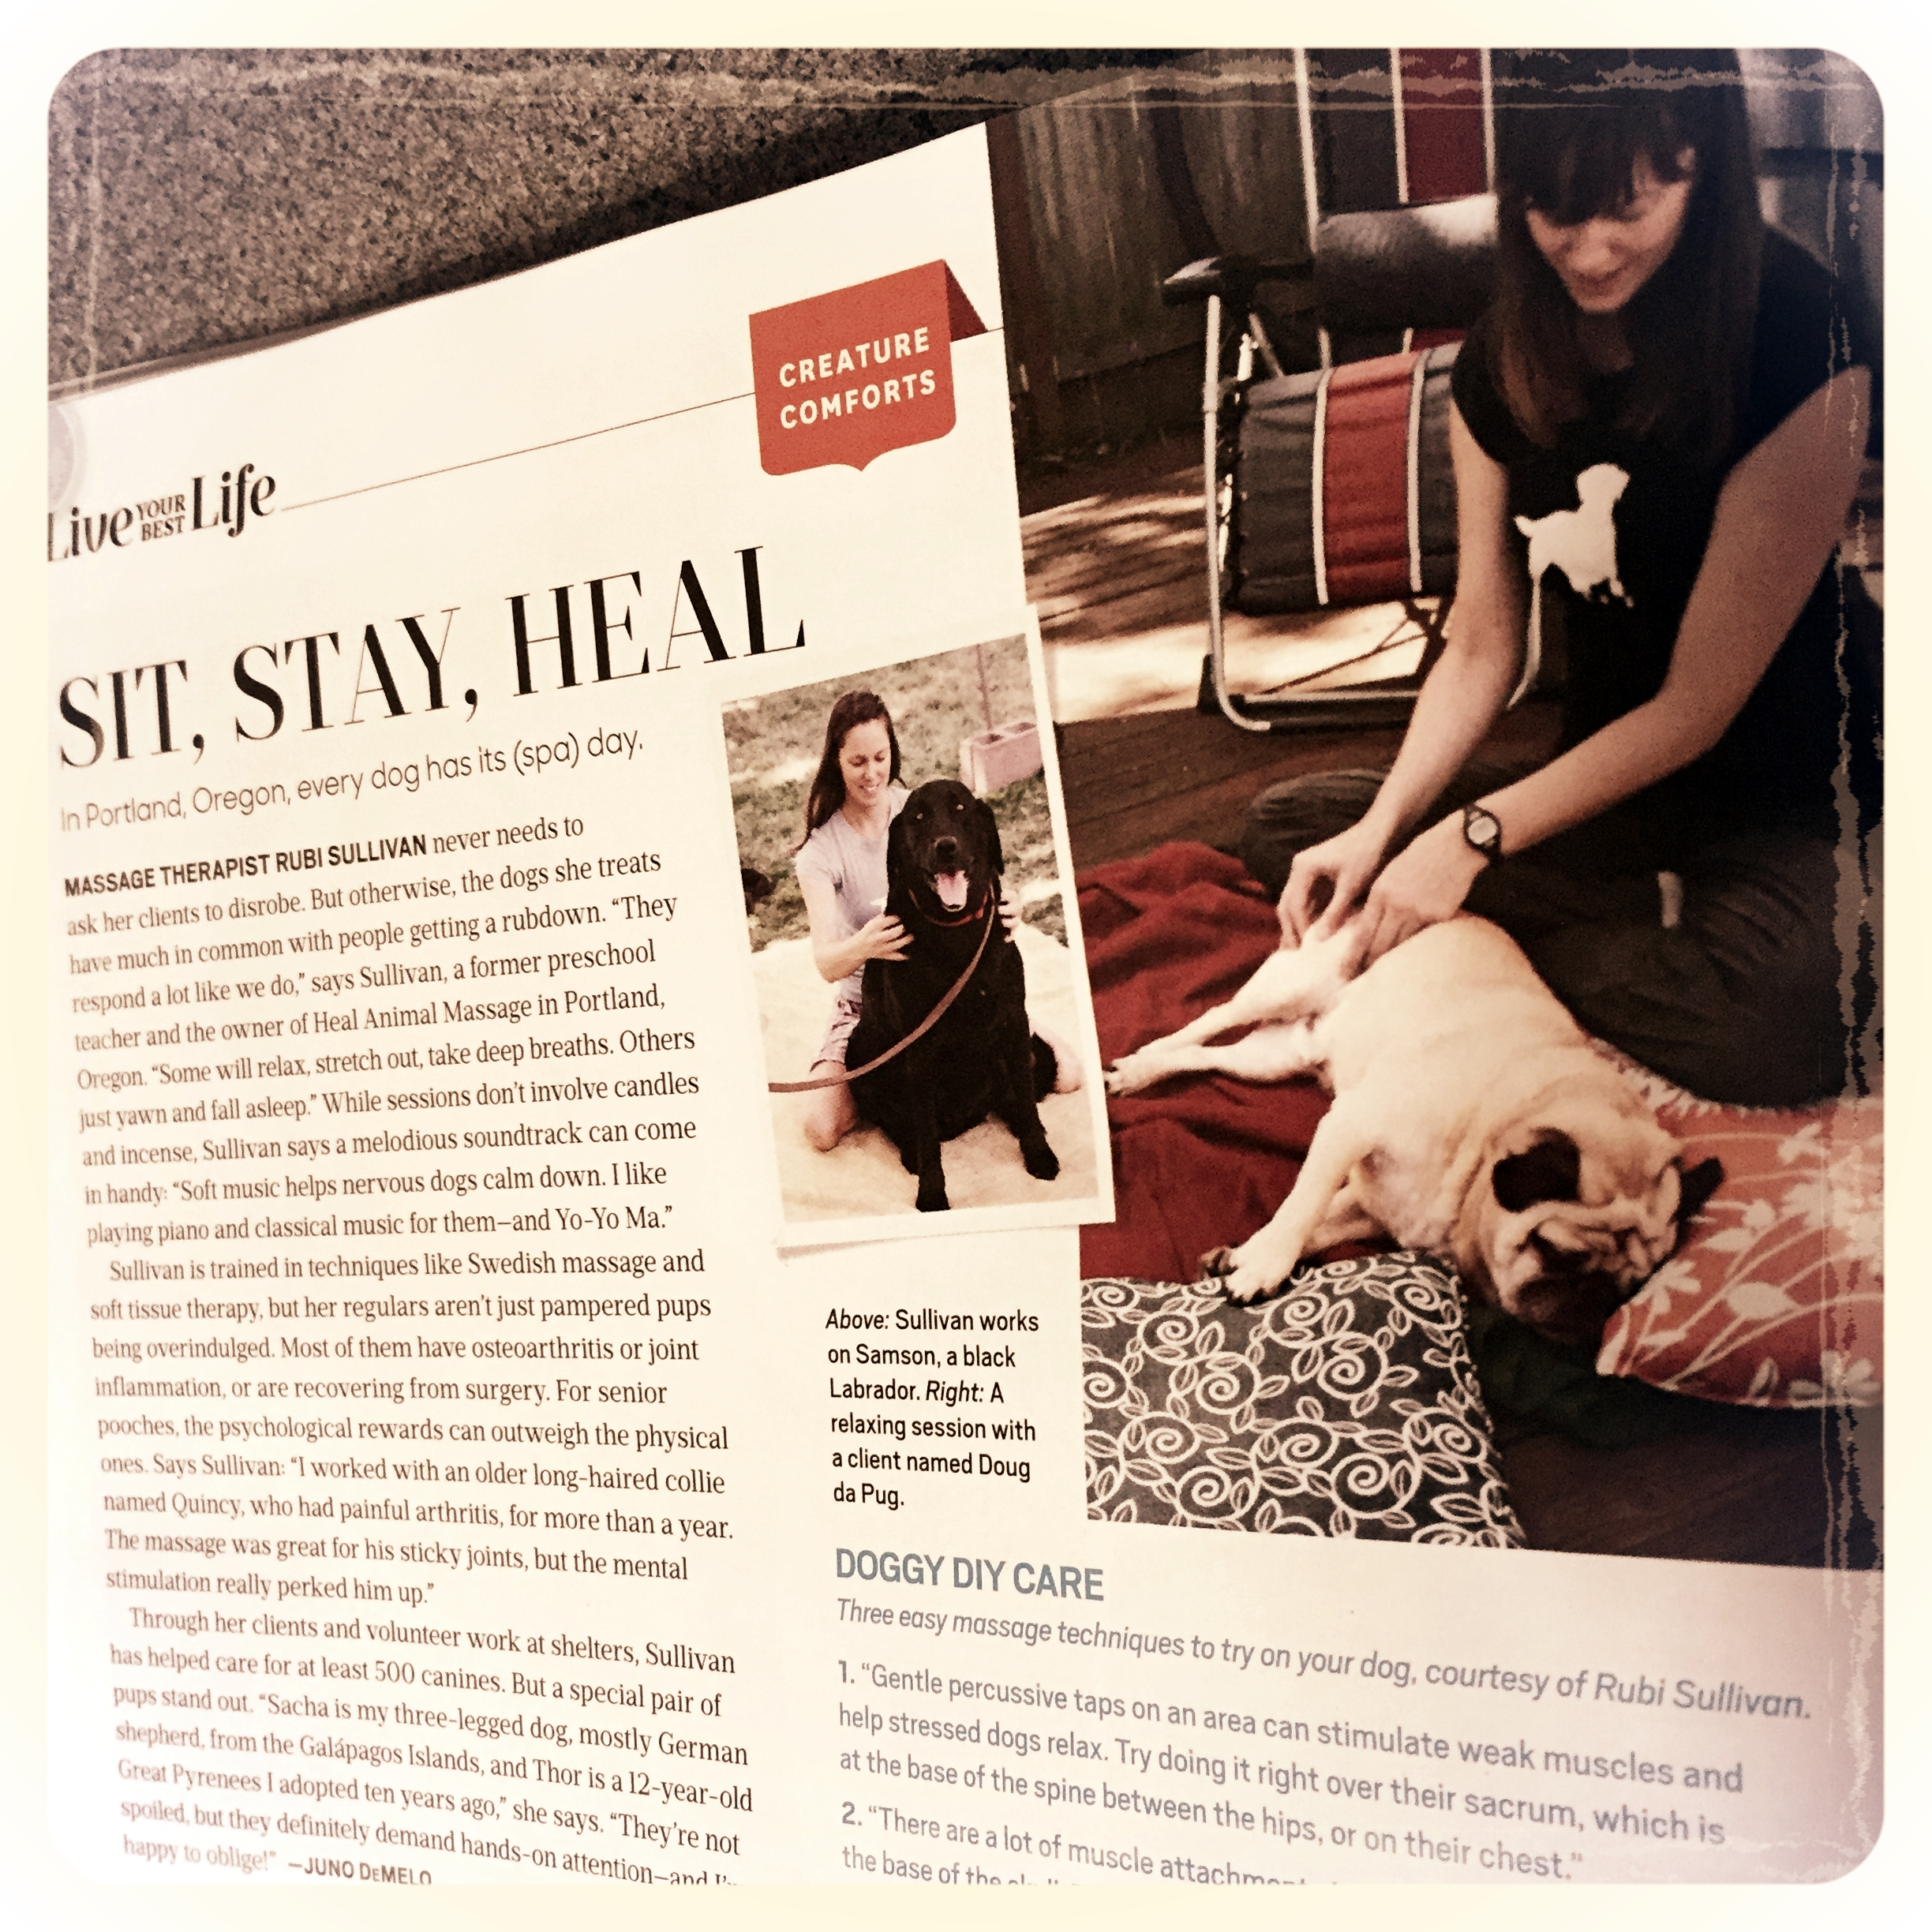 Oprah Magazine featured Heal Animal Massage! - If you flip to page 32 you can read up on it :) We hope you enjoy it!Very special thanks to Samson with Apolloni Vineyards and Doug da Pug with Turnip the Heat Cooking School for being amazing models!!